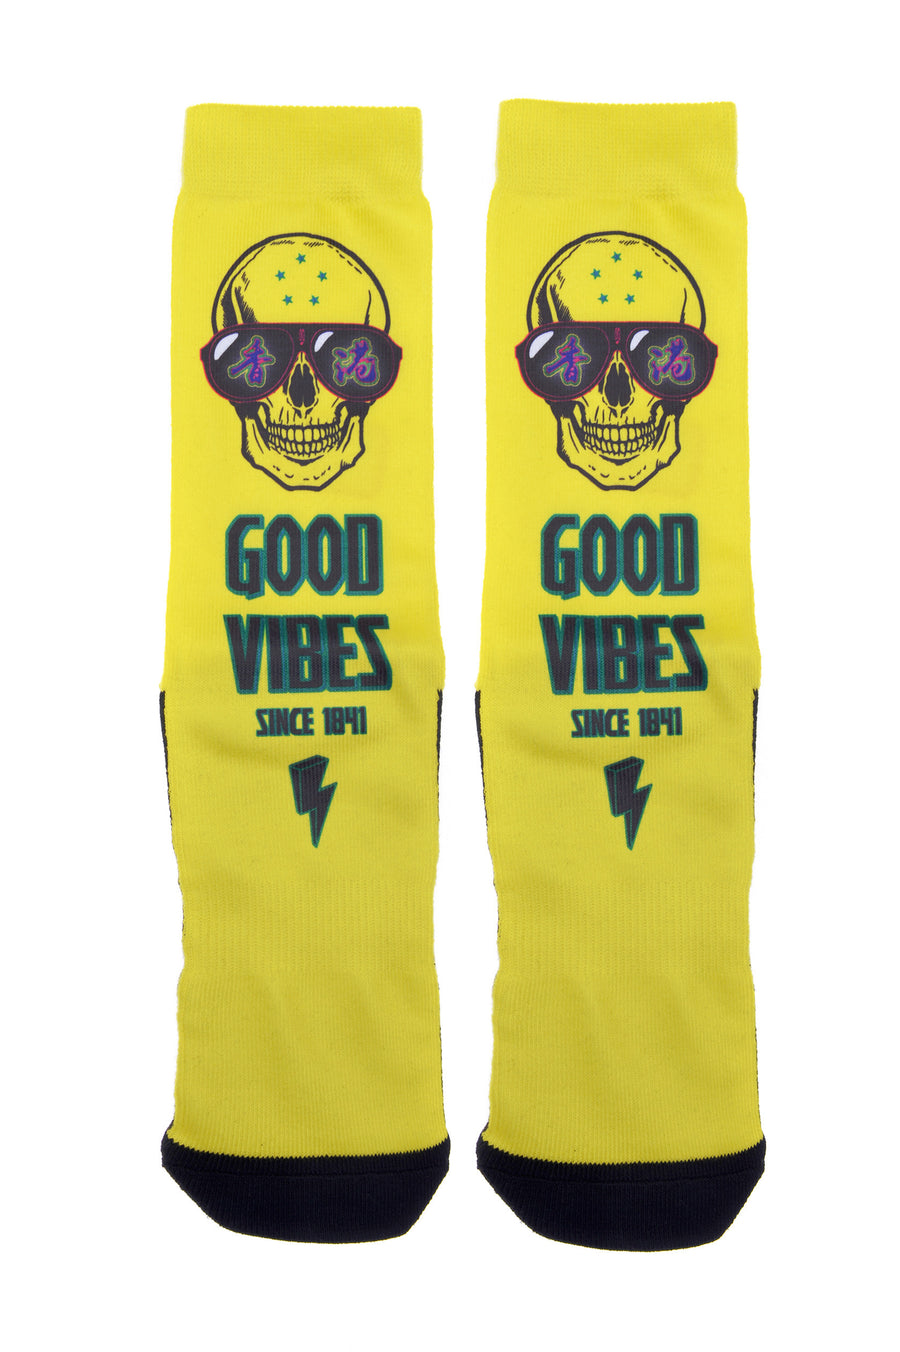 Mens Good Vibes Hong Kong Yellow Novelty Crew Socks